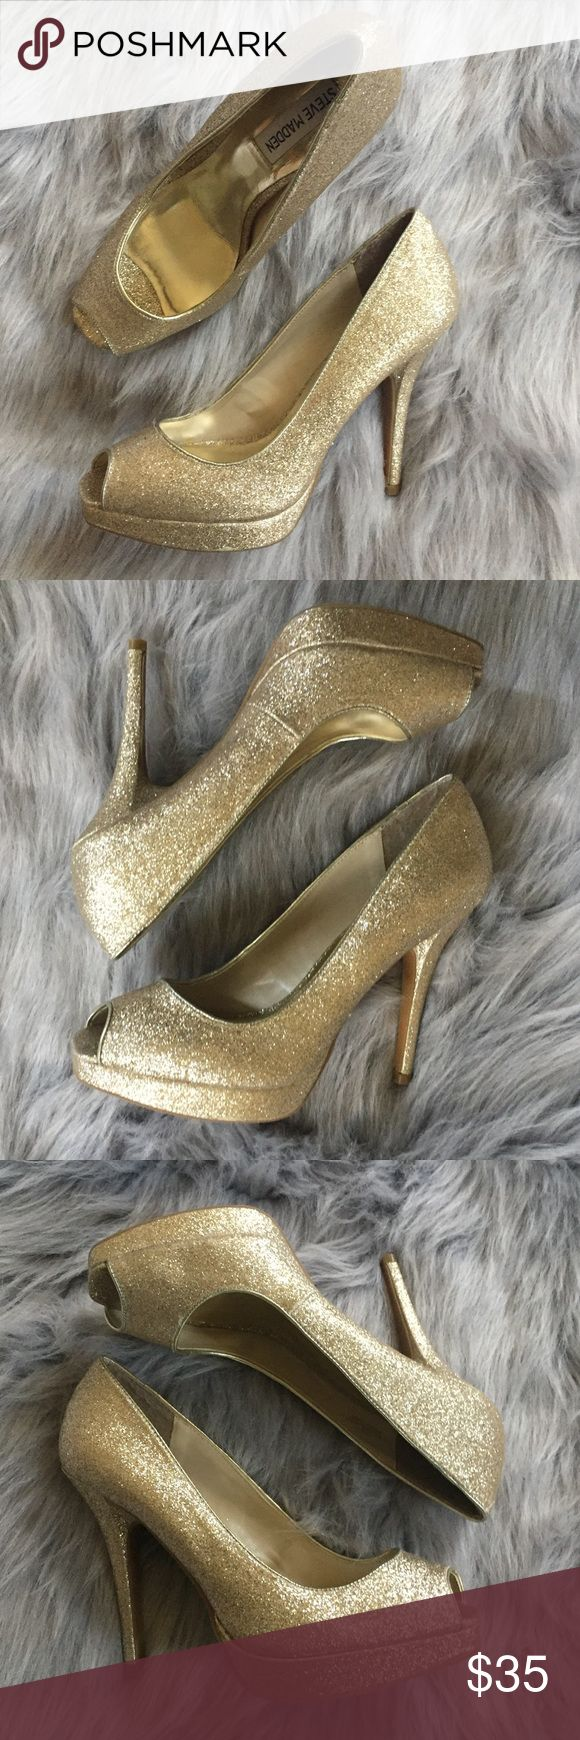 "Steve Madden Gold Open Toe Platform Pumps  8 So pretty! Only worn once or twice. Open toed platform gold glitter pumps. 3"" heel. Perfect condition!   Retail $70    ⭐️Suggested User 📫Same or Next Day Shipping 💯Top Rated Seller  🎁 Bundle Discount Buy 3 or more Get 25% Off 🙅🏽No Trades Steve Madden Shoes Platforms"